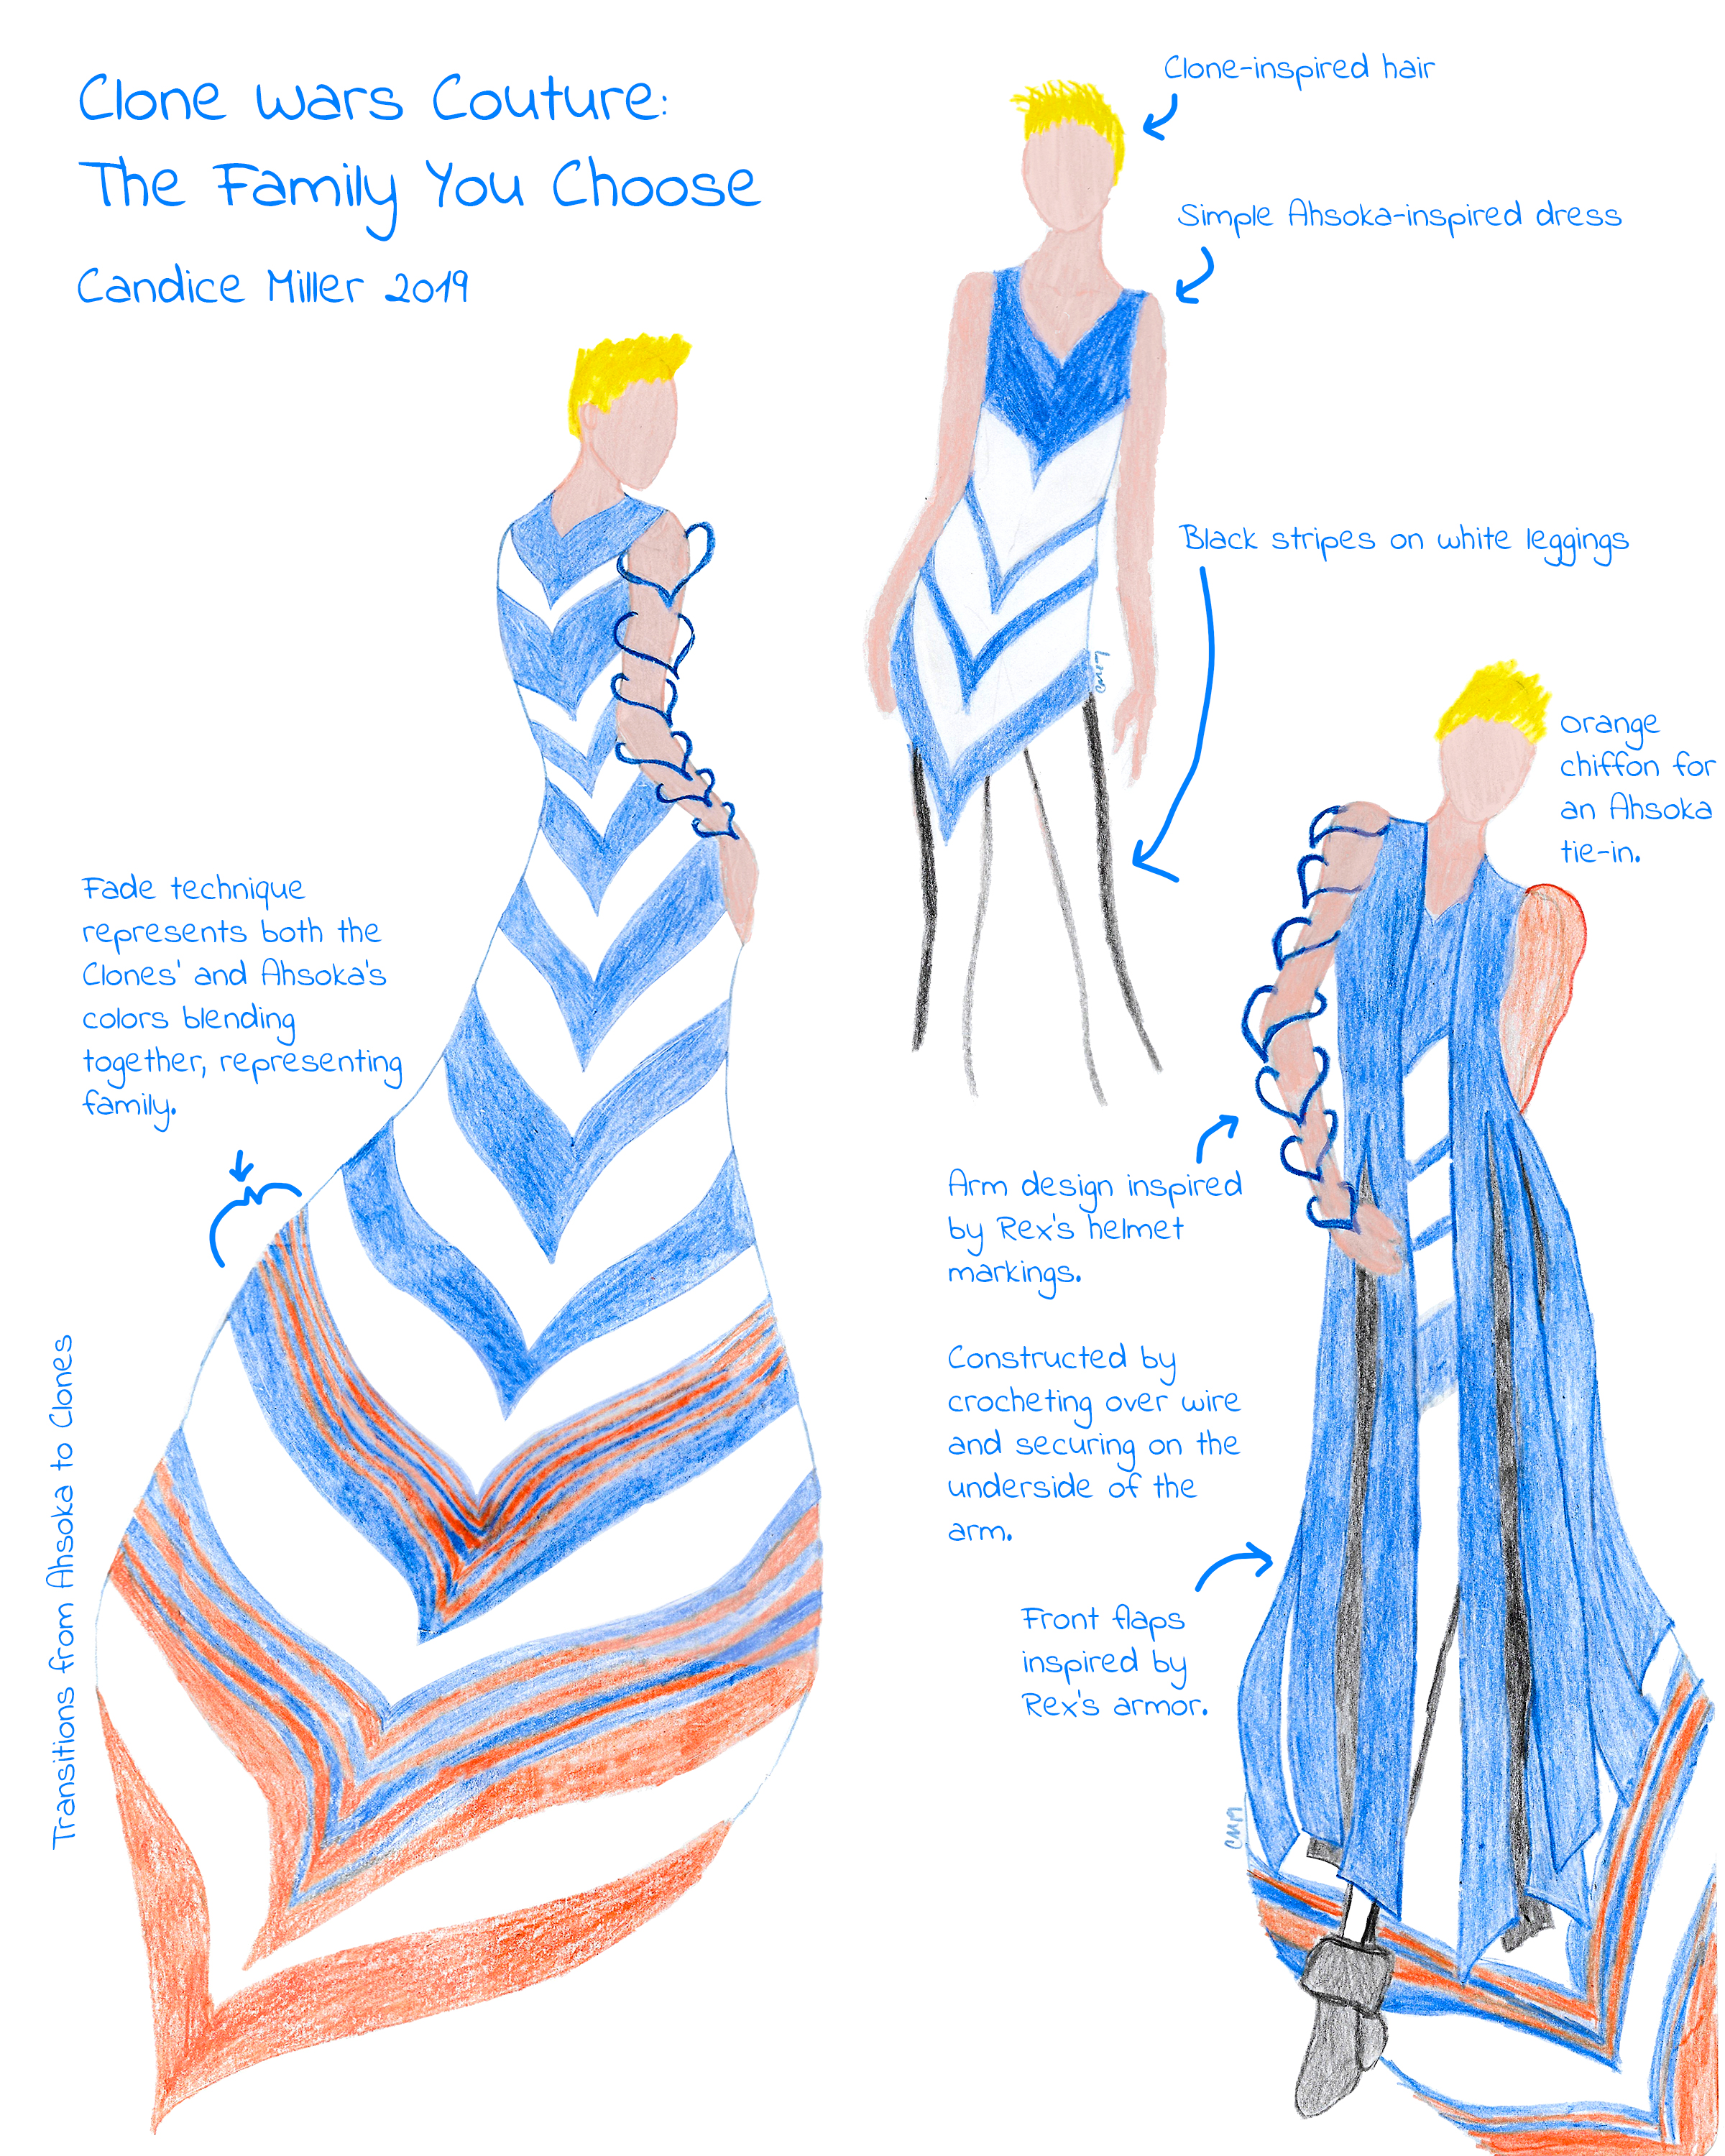 Clone Wars Couture: The Family you Choose inspired by Ahsoka Tano by Candice Miller